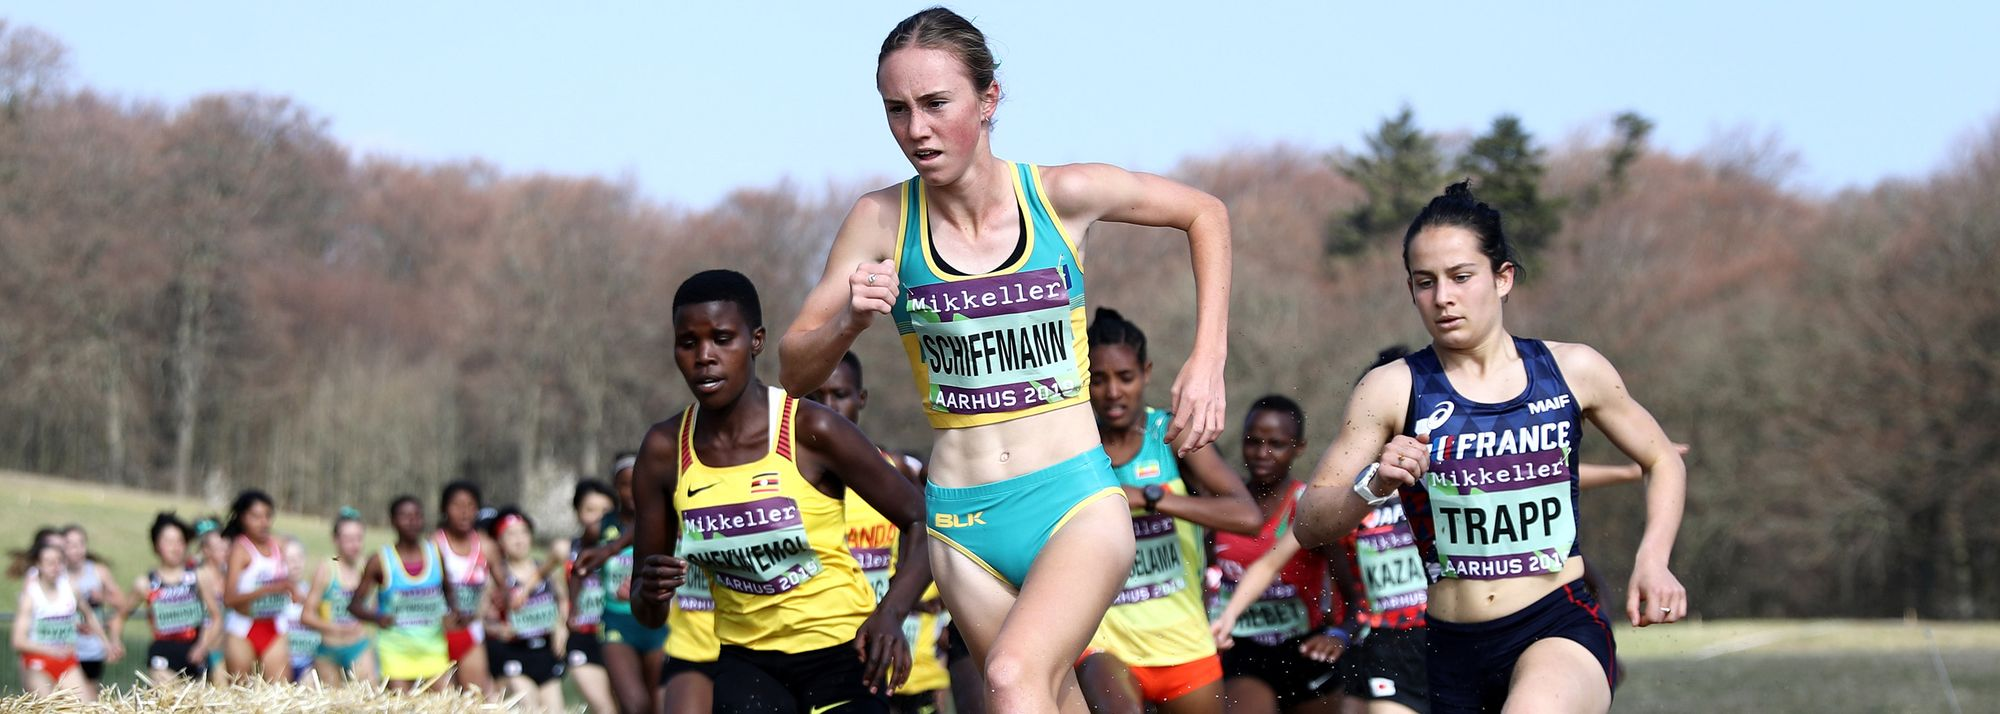 World Athletics and World Masters Athletics have reached a historic agreement that will see masters championships held for the first time alongside the World Athletics Cross Country Championships in Bathurst next year.